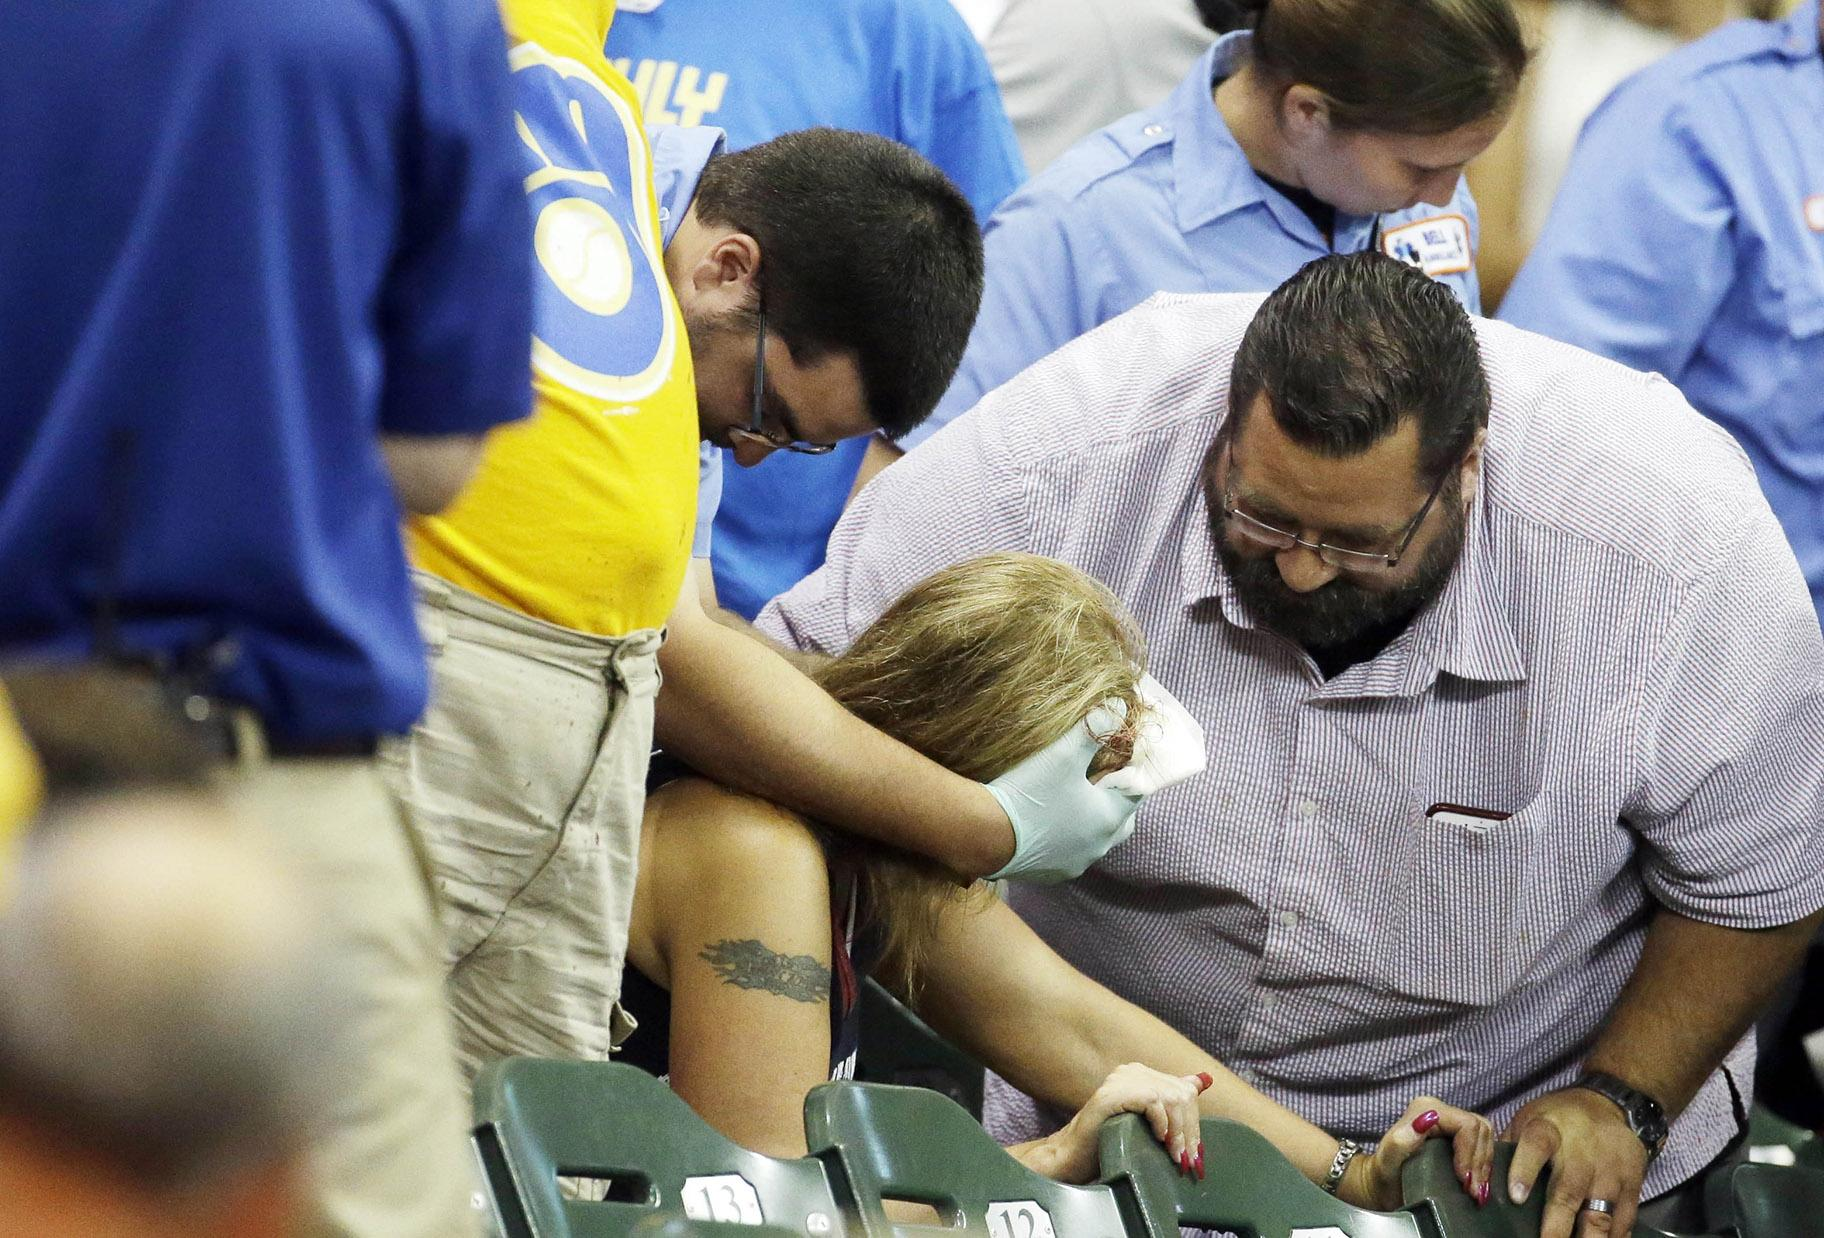 In this July 6, 2015 file photo, a fan is helped after being hit by a foul ball during the ninth inning of a baseball game between the Milwaukee Brewers and the Atlanta Braves in Milwaukee. (AP Photo / Morry Gash, File)